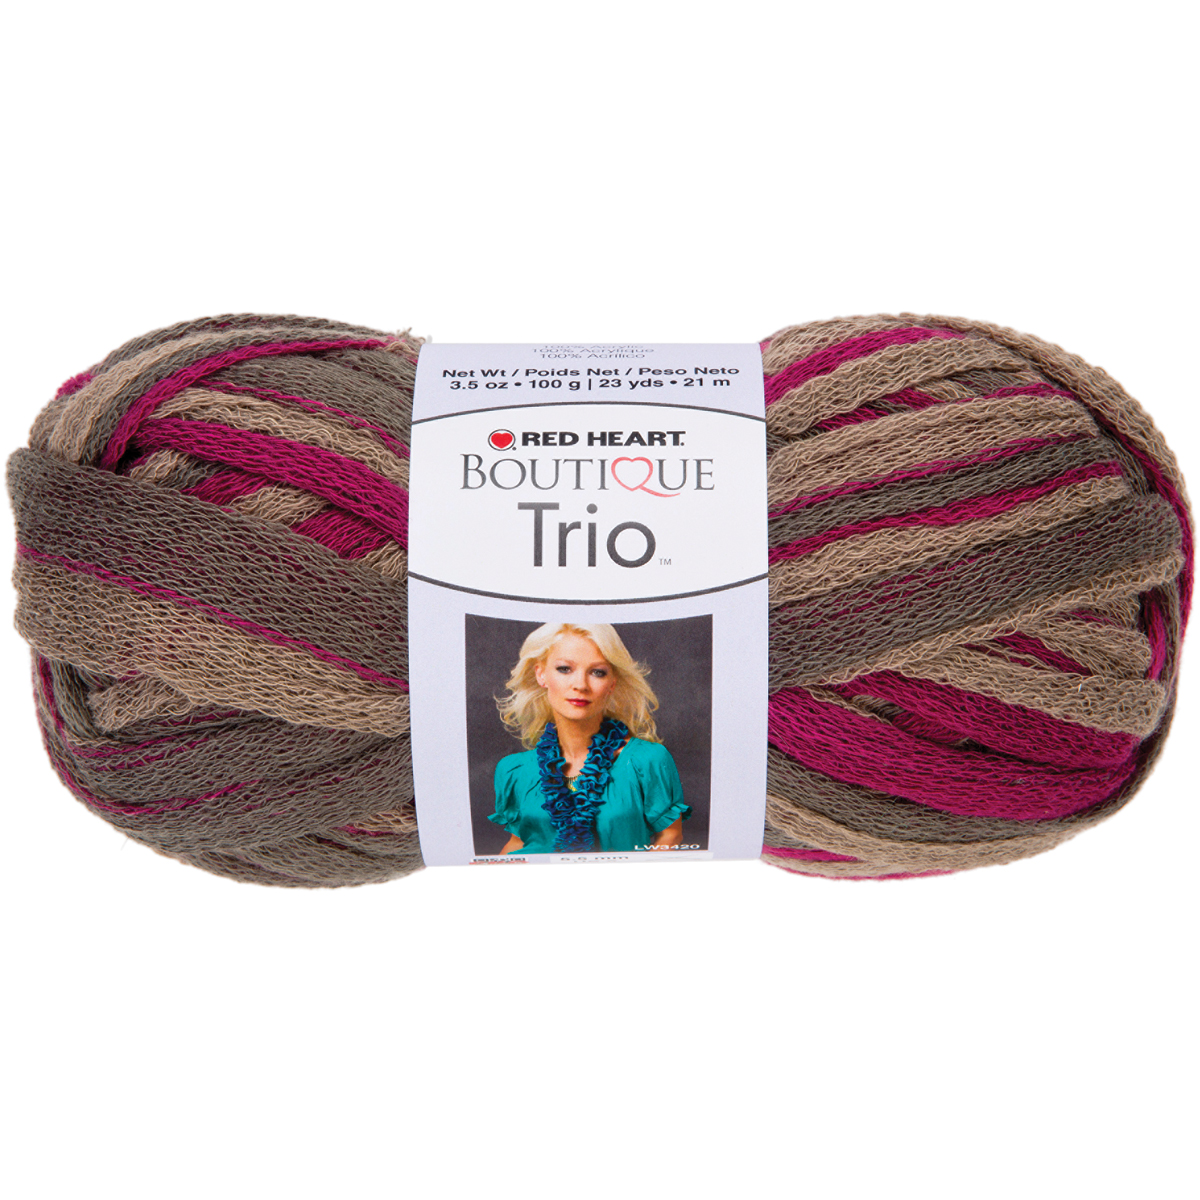 ... Red Heart Boutique Trio Yarn ? Red Heart Boutique Trio Yarn Cactus